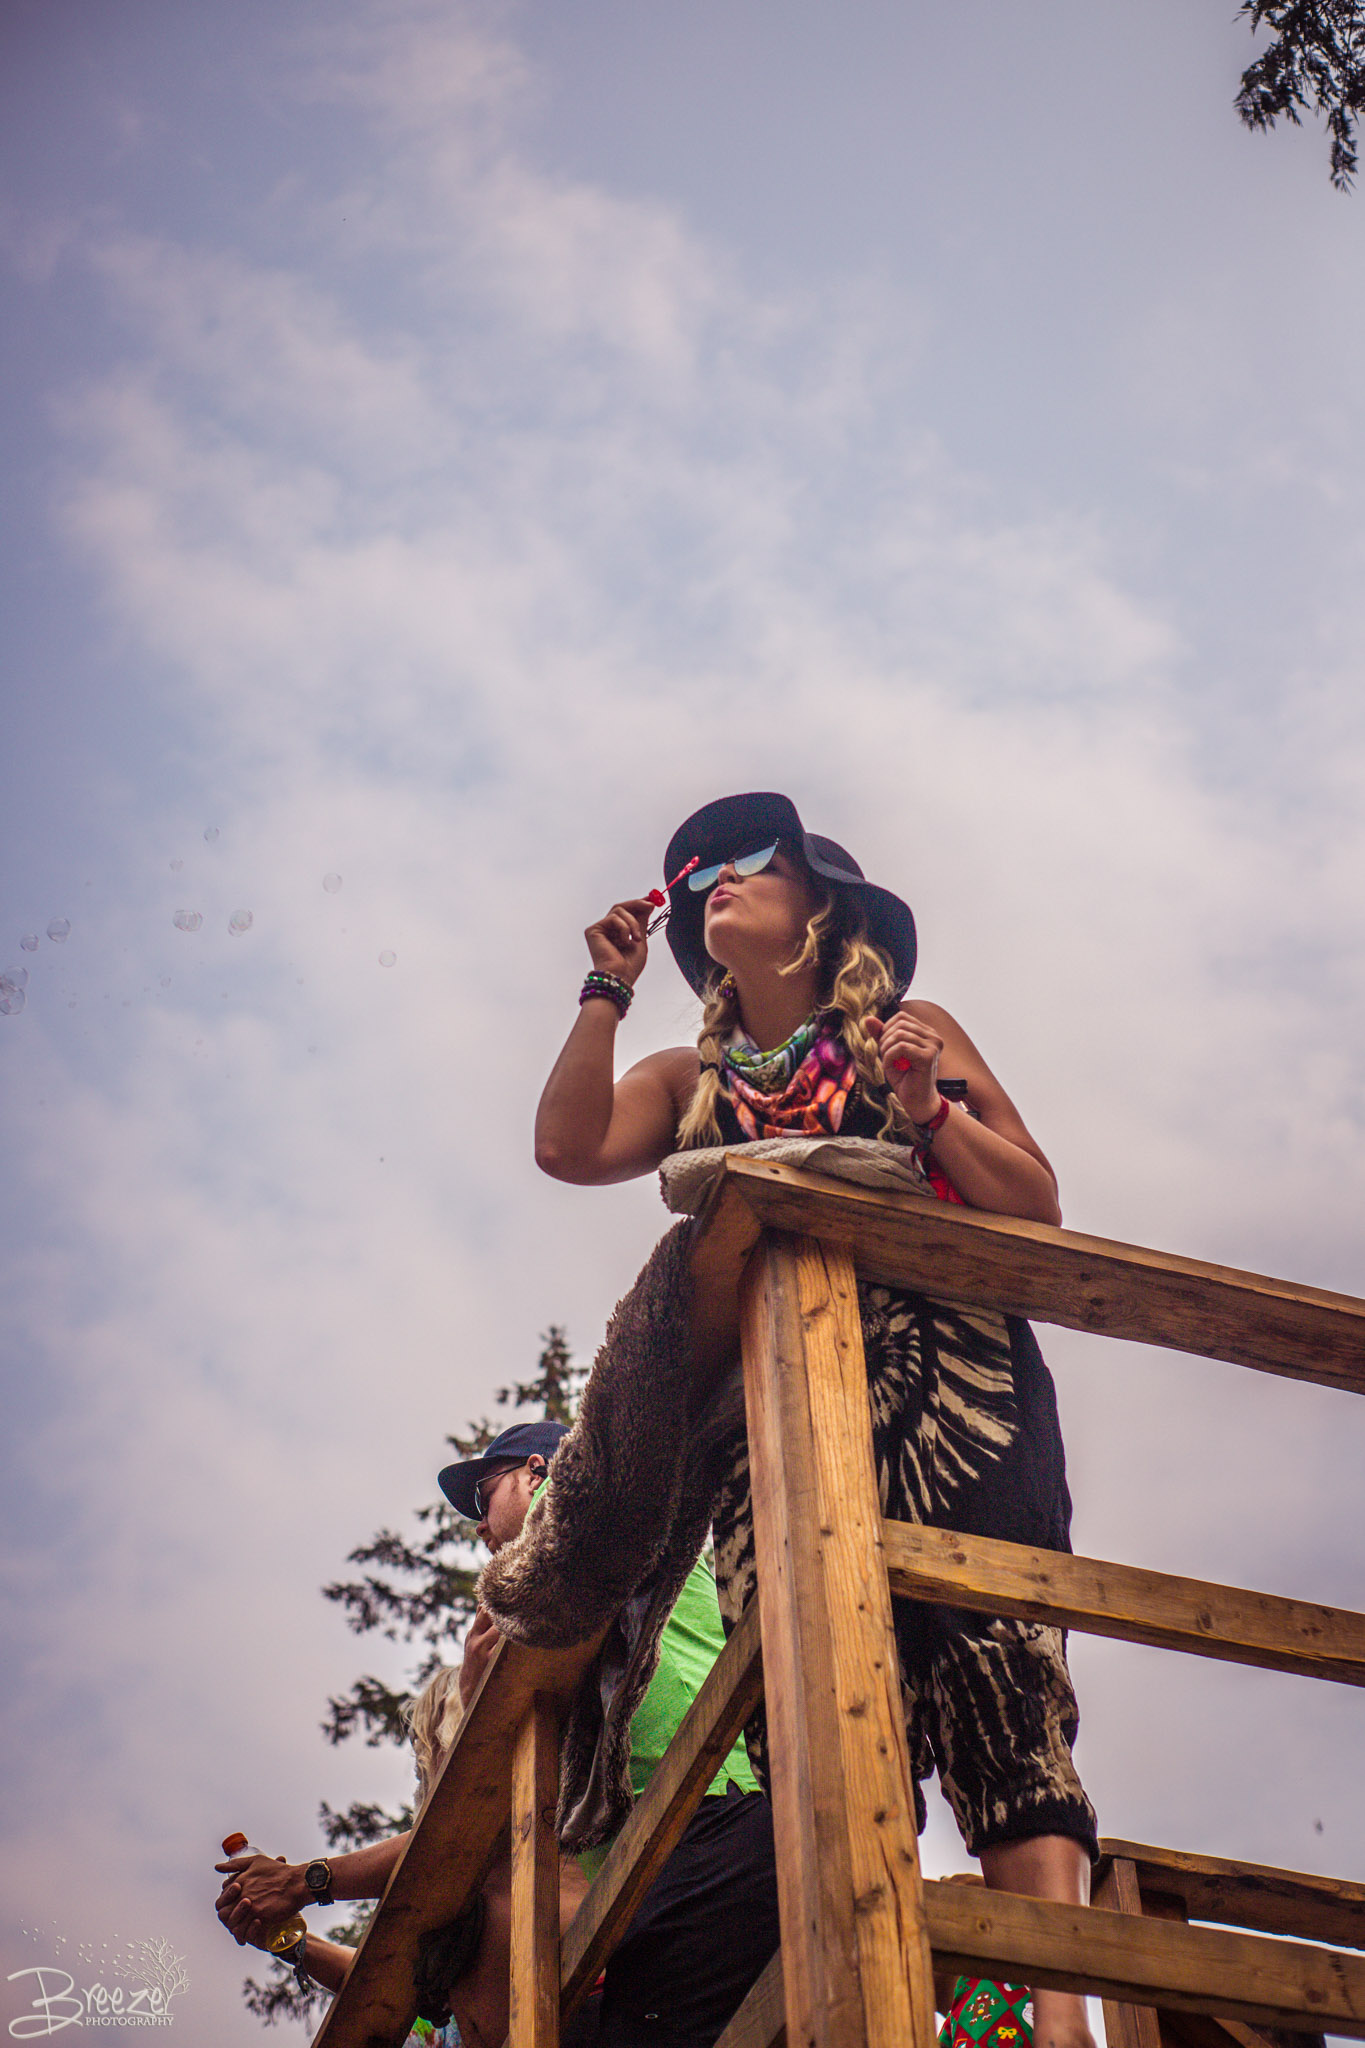 Brie'Ana Breeze Photography & Media - Shambhala 2018-1713.jpg